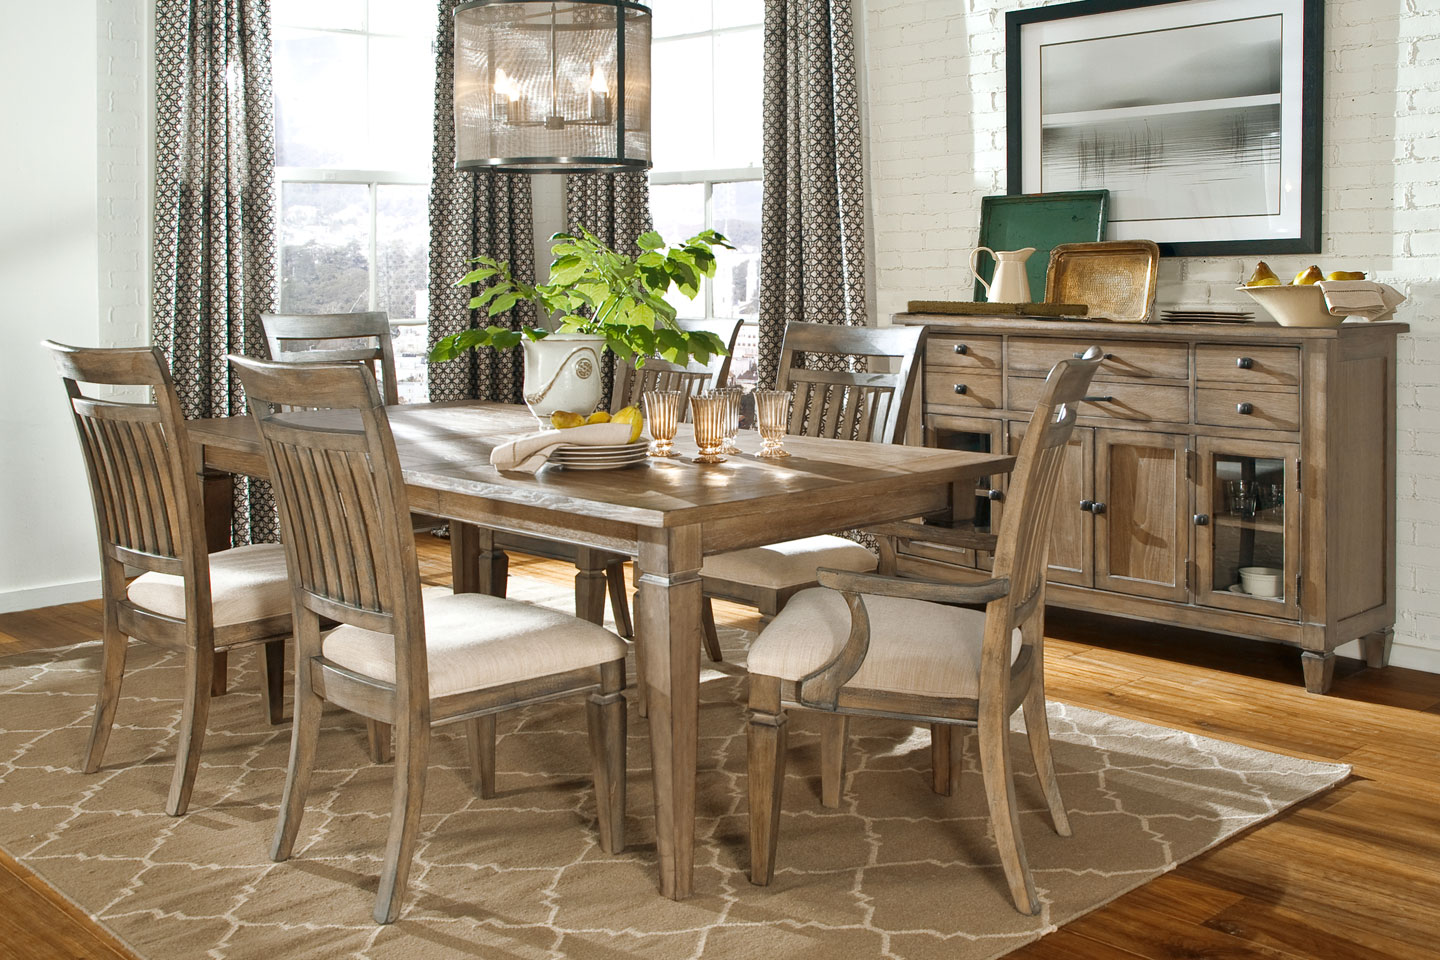 Dining Fine Dining Furniture Gavin Rustic Formal Dining Room Setdining fine dining furniture gavin rustic formal dining room set  . Rustic Modern Dining Room Ideas. Home Design Ideas